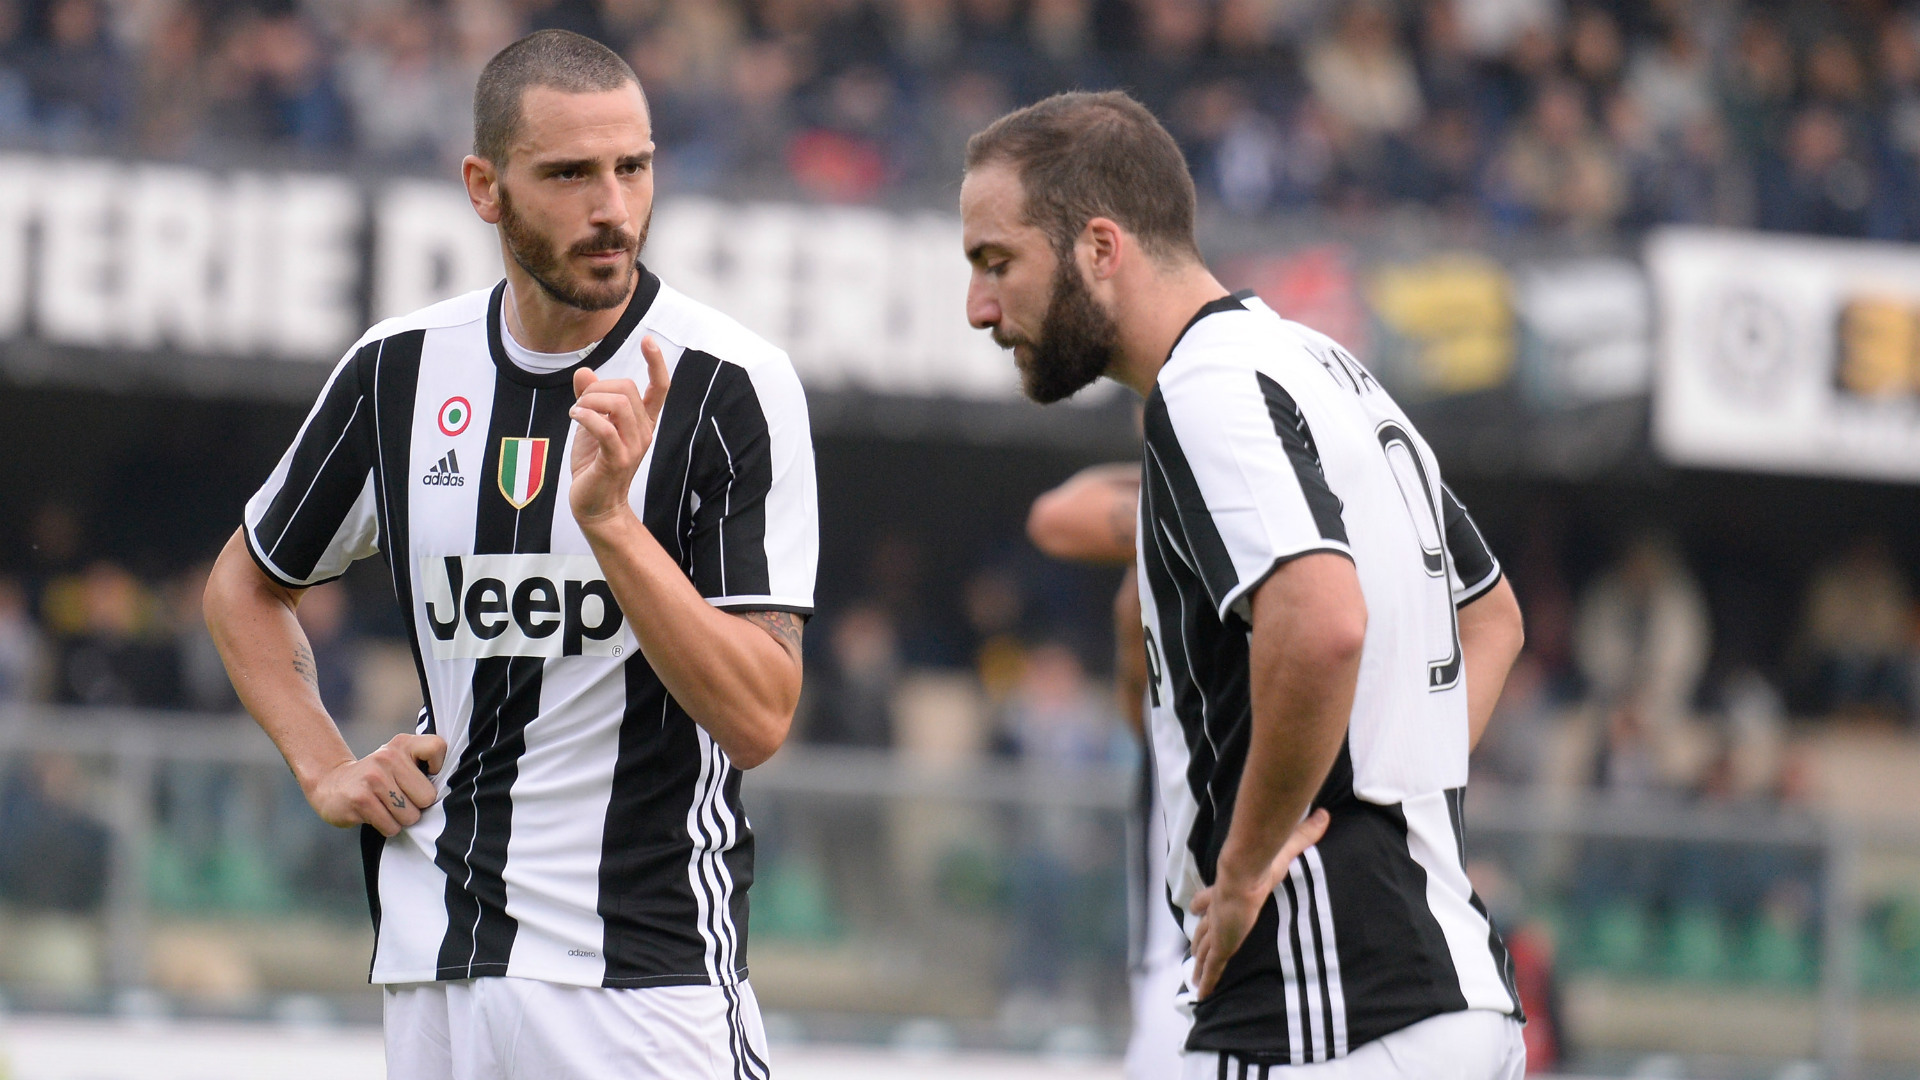 Juventus And AC Milan Considering Swap Deal With Bonucci And Higuain